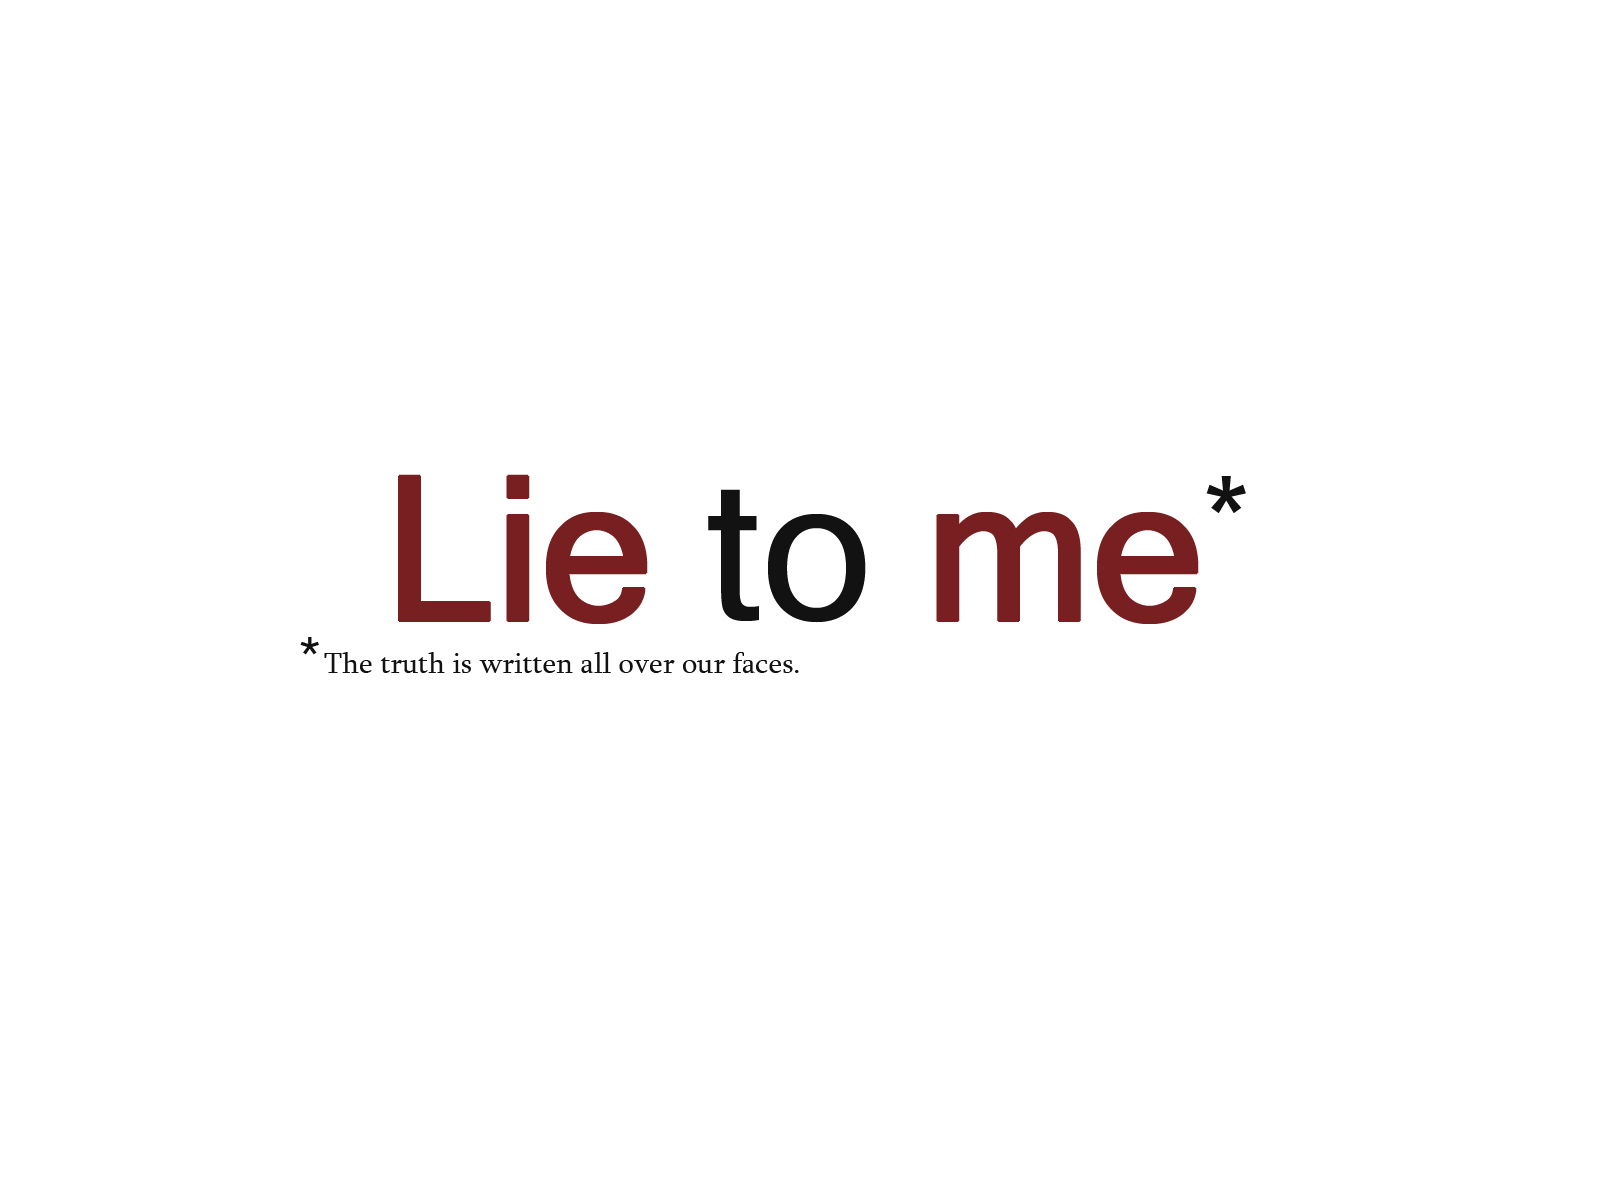 Lie to Me Title Wallpaper   Lie to Me Wallpaper 4926564 1600x1200